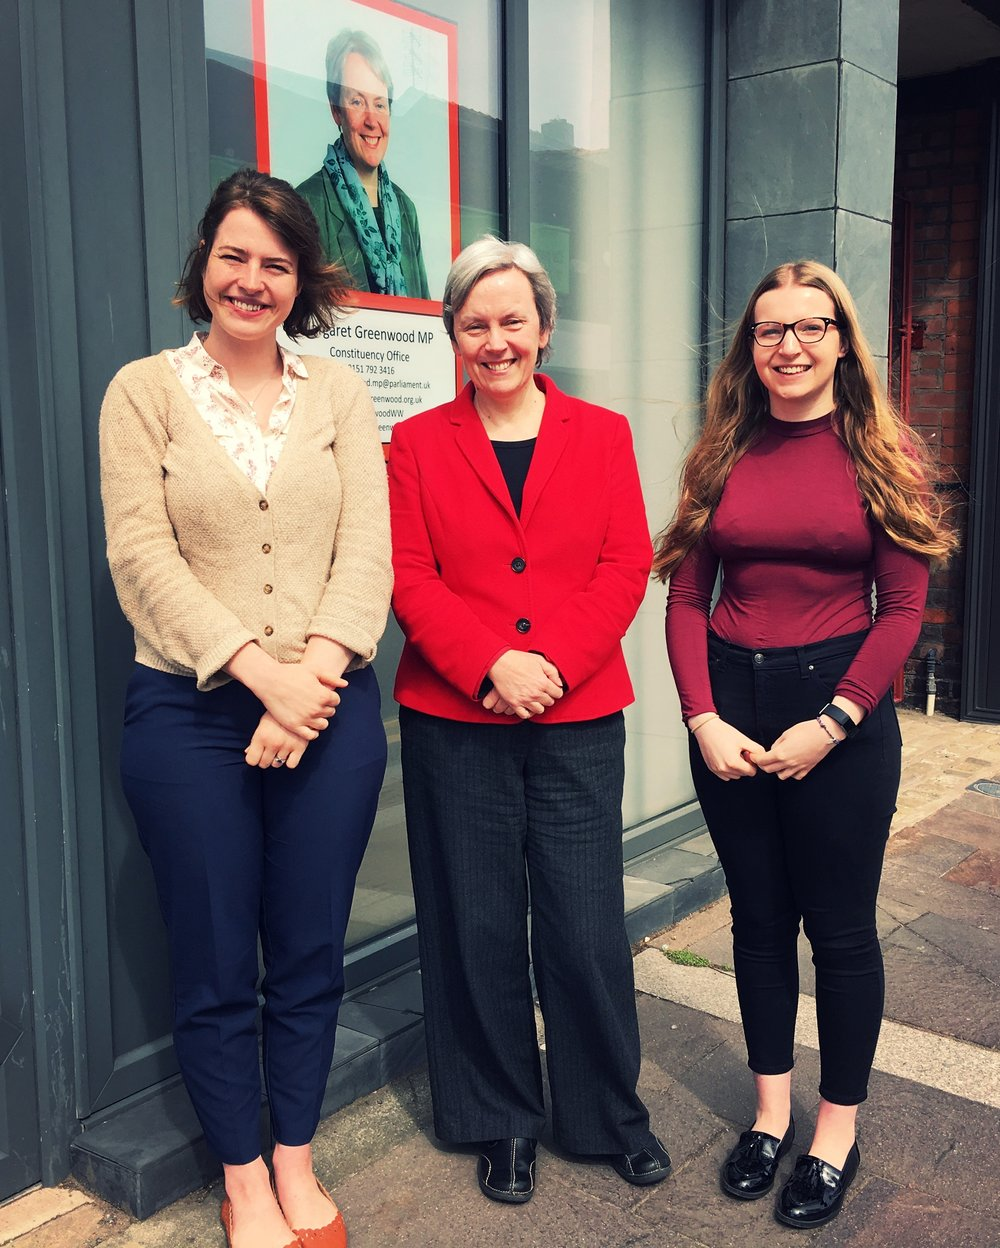 Jo Musker-Sherwood (HFTF Director), Margaret Greenwood MP and Laura D'Henin (HFTF Researcher)